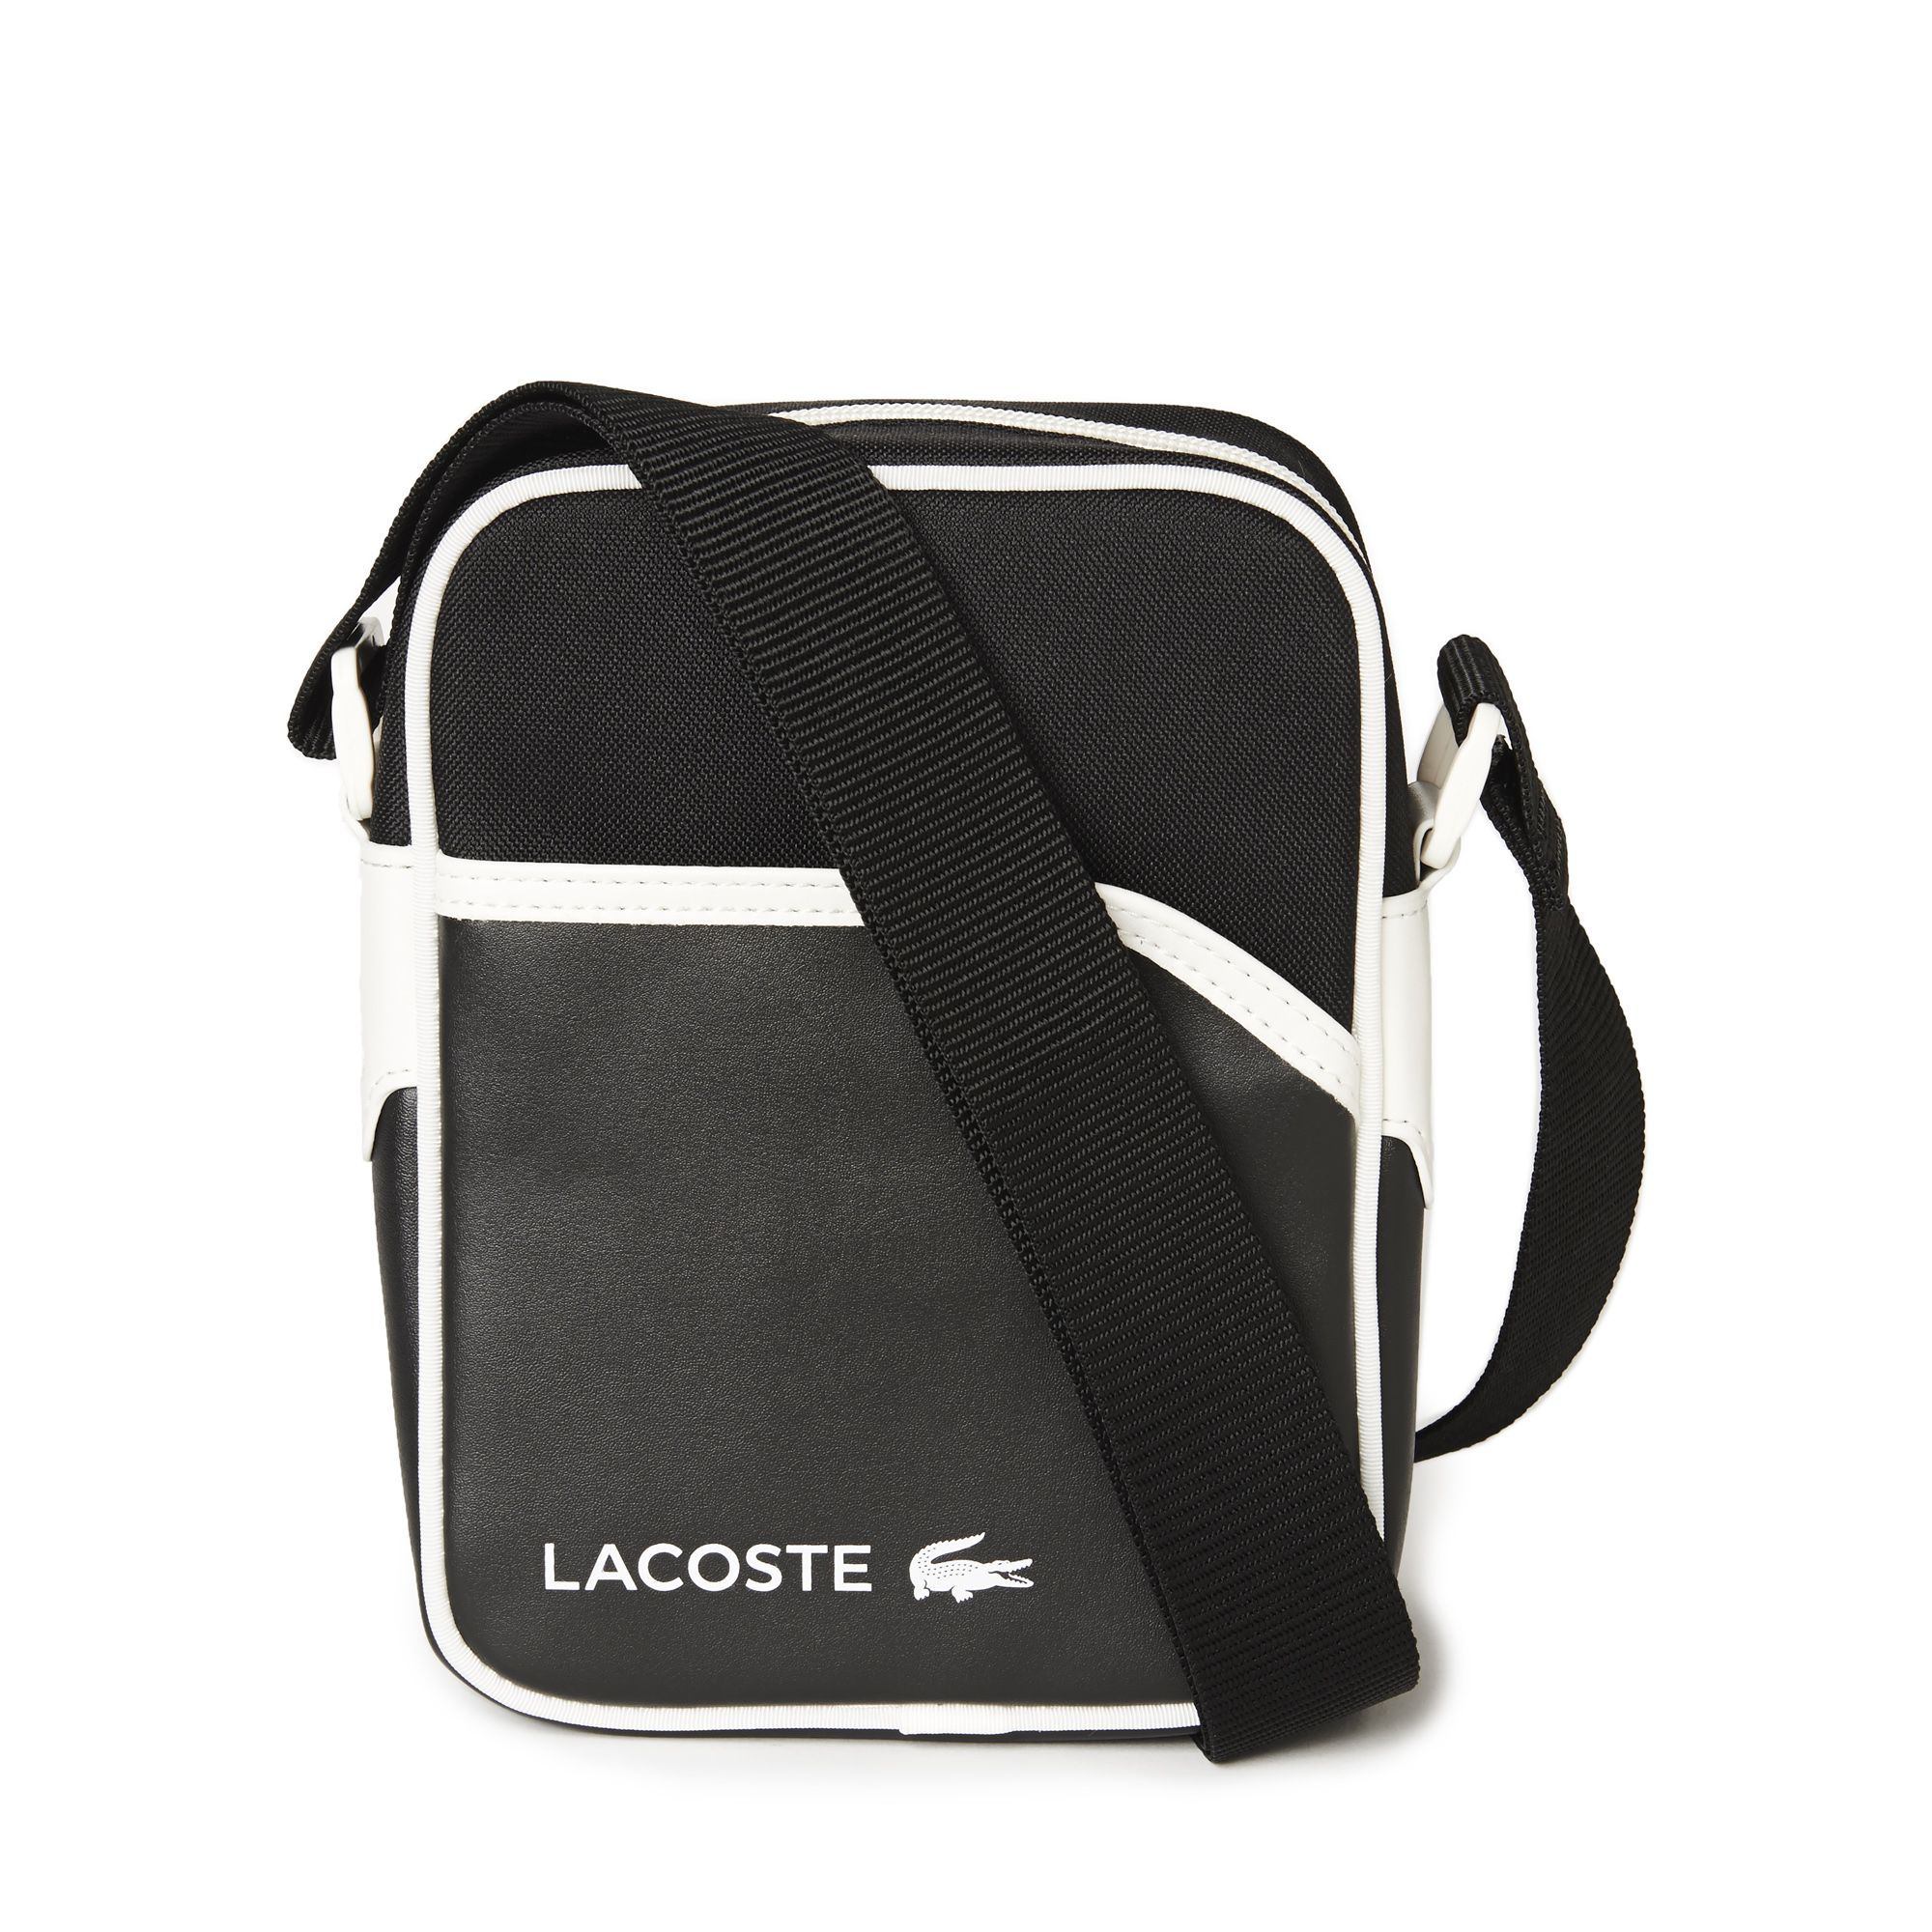 038e7f8759 Lacoste Sport Ultimum camera bag | LACOSTE | Projects to Try ...